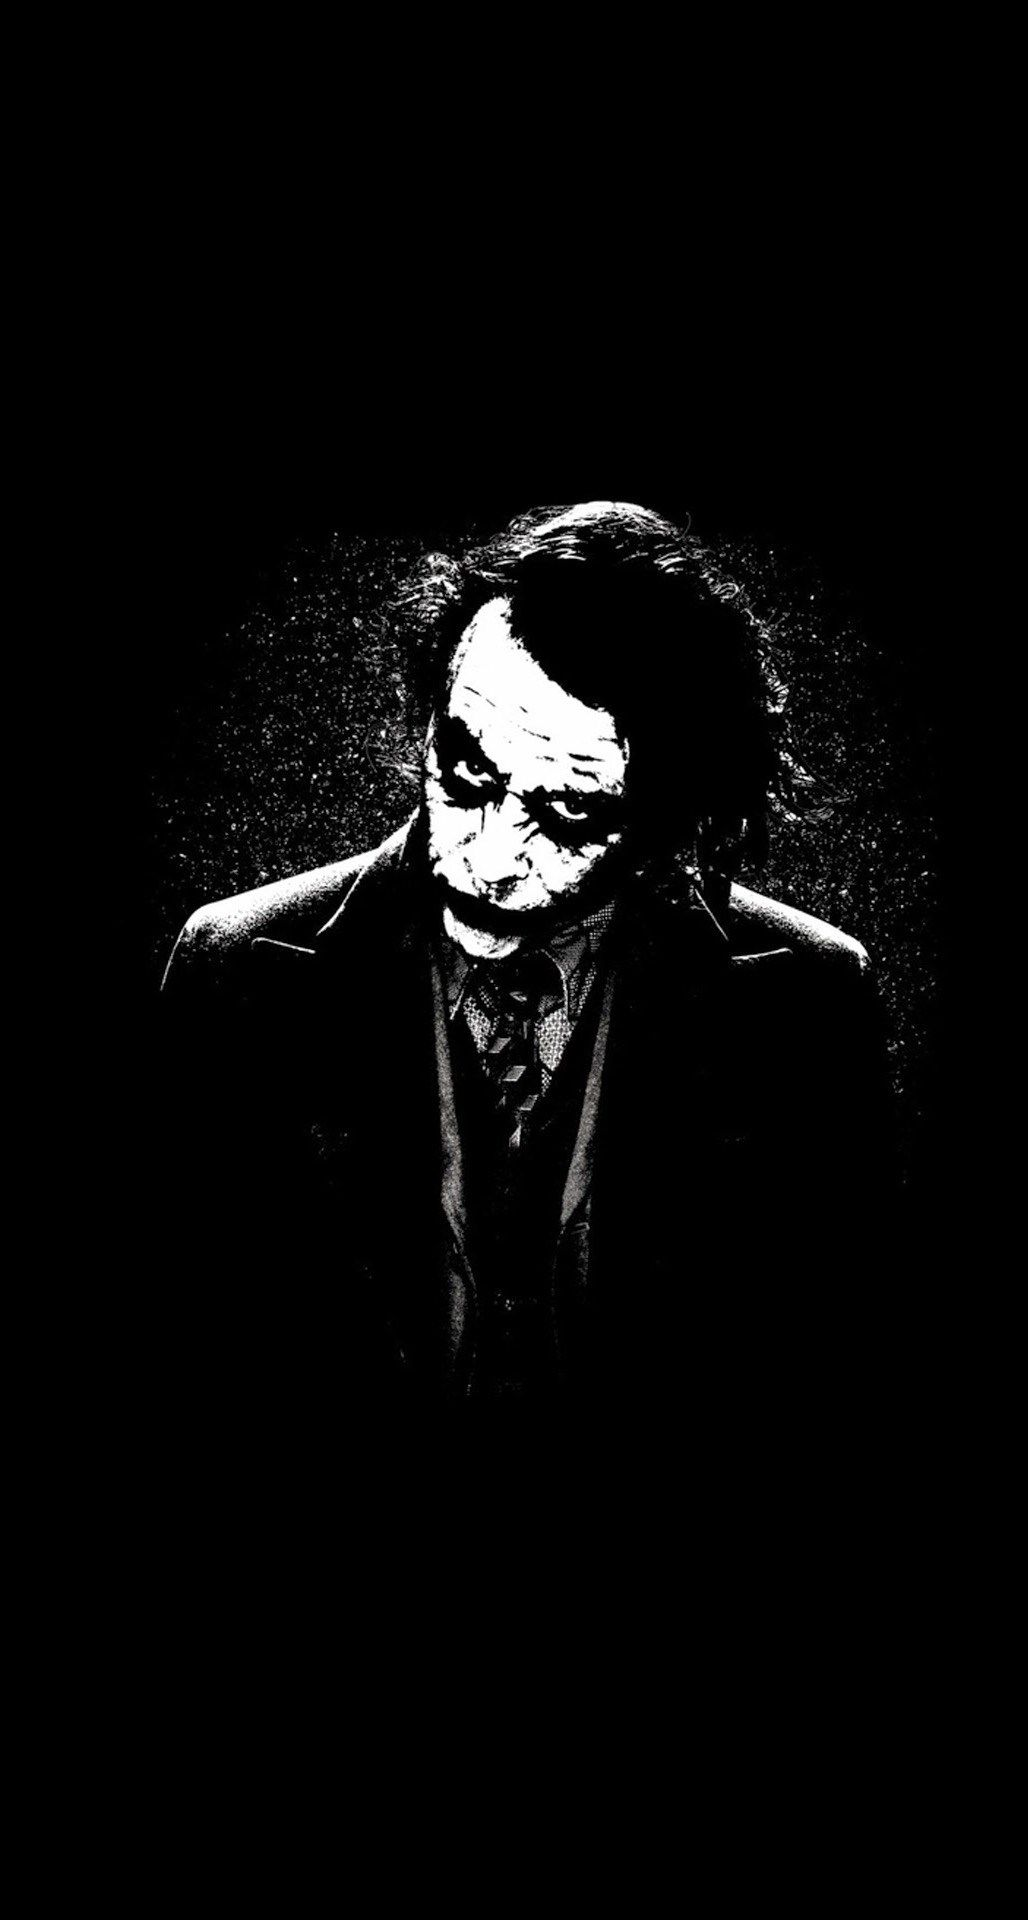 Wallpaper iphone rov - Search Results For Dark Knight Joker Iphone Wallpaper Adorable Wallpapers